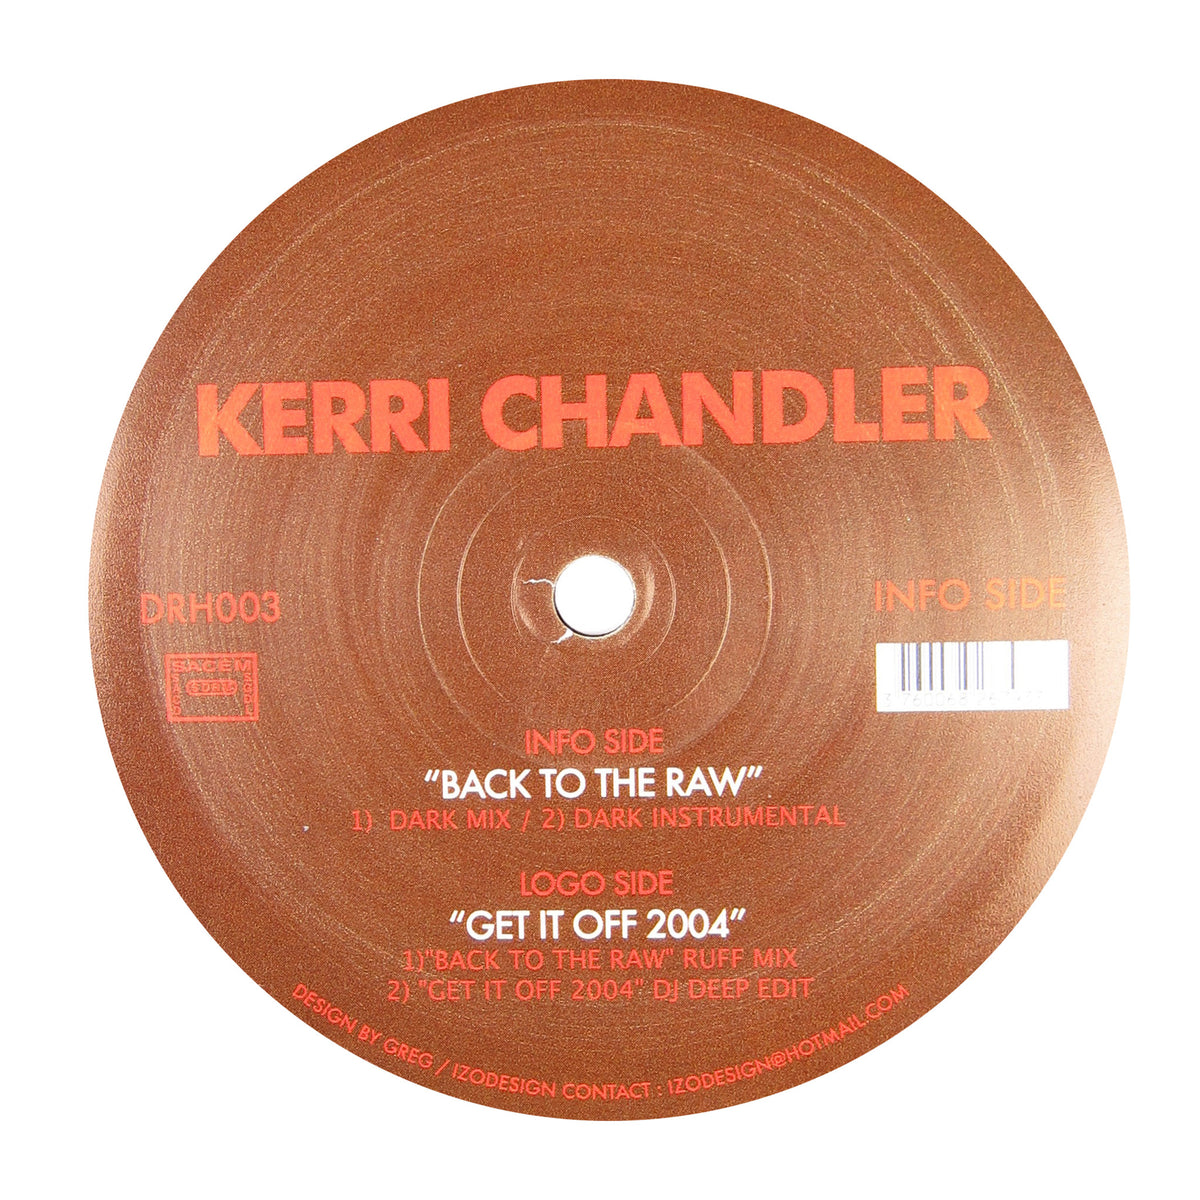 Kerri Chandler: Back To The Raw Vinyl 12""